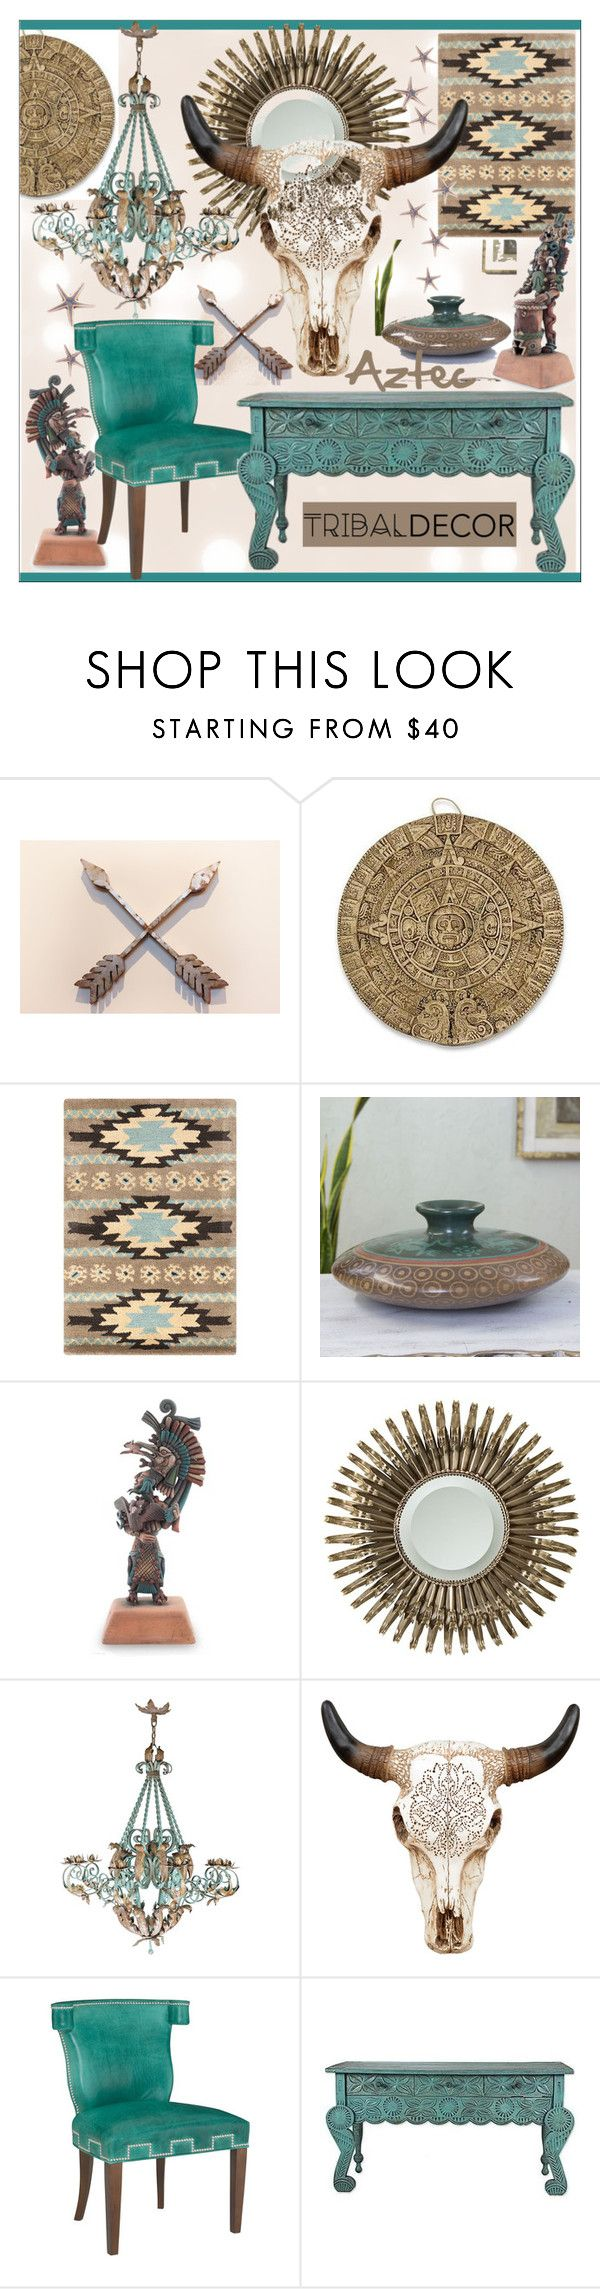 """""""Tribal Decor * Turquoise Living Room"""" by calamity-jane-always ❤ liked on Polyvore featuring interior, interiors, interior design, home, home decor, interior decorating, NOVICA, Universal Lighting and Decor, living room and homedecor"""